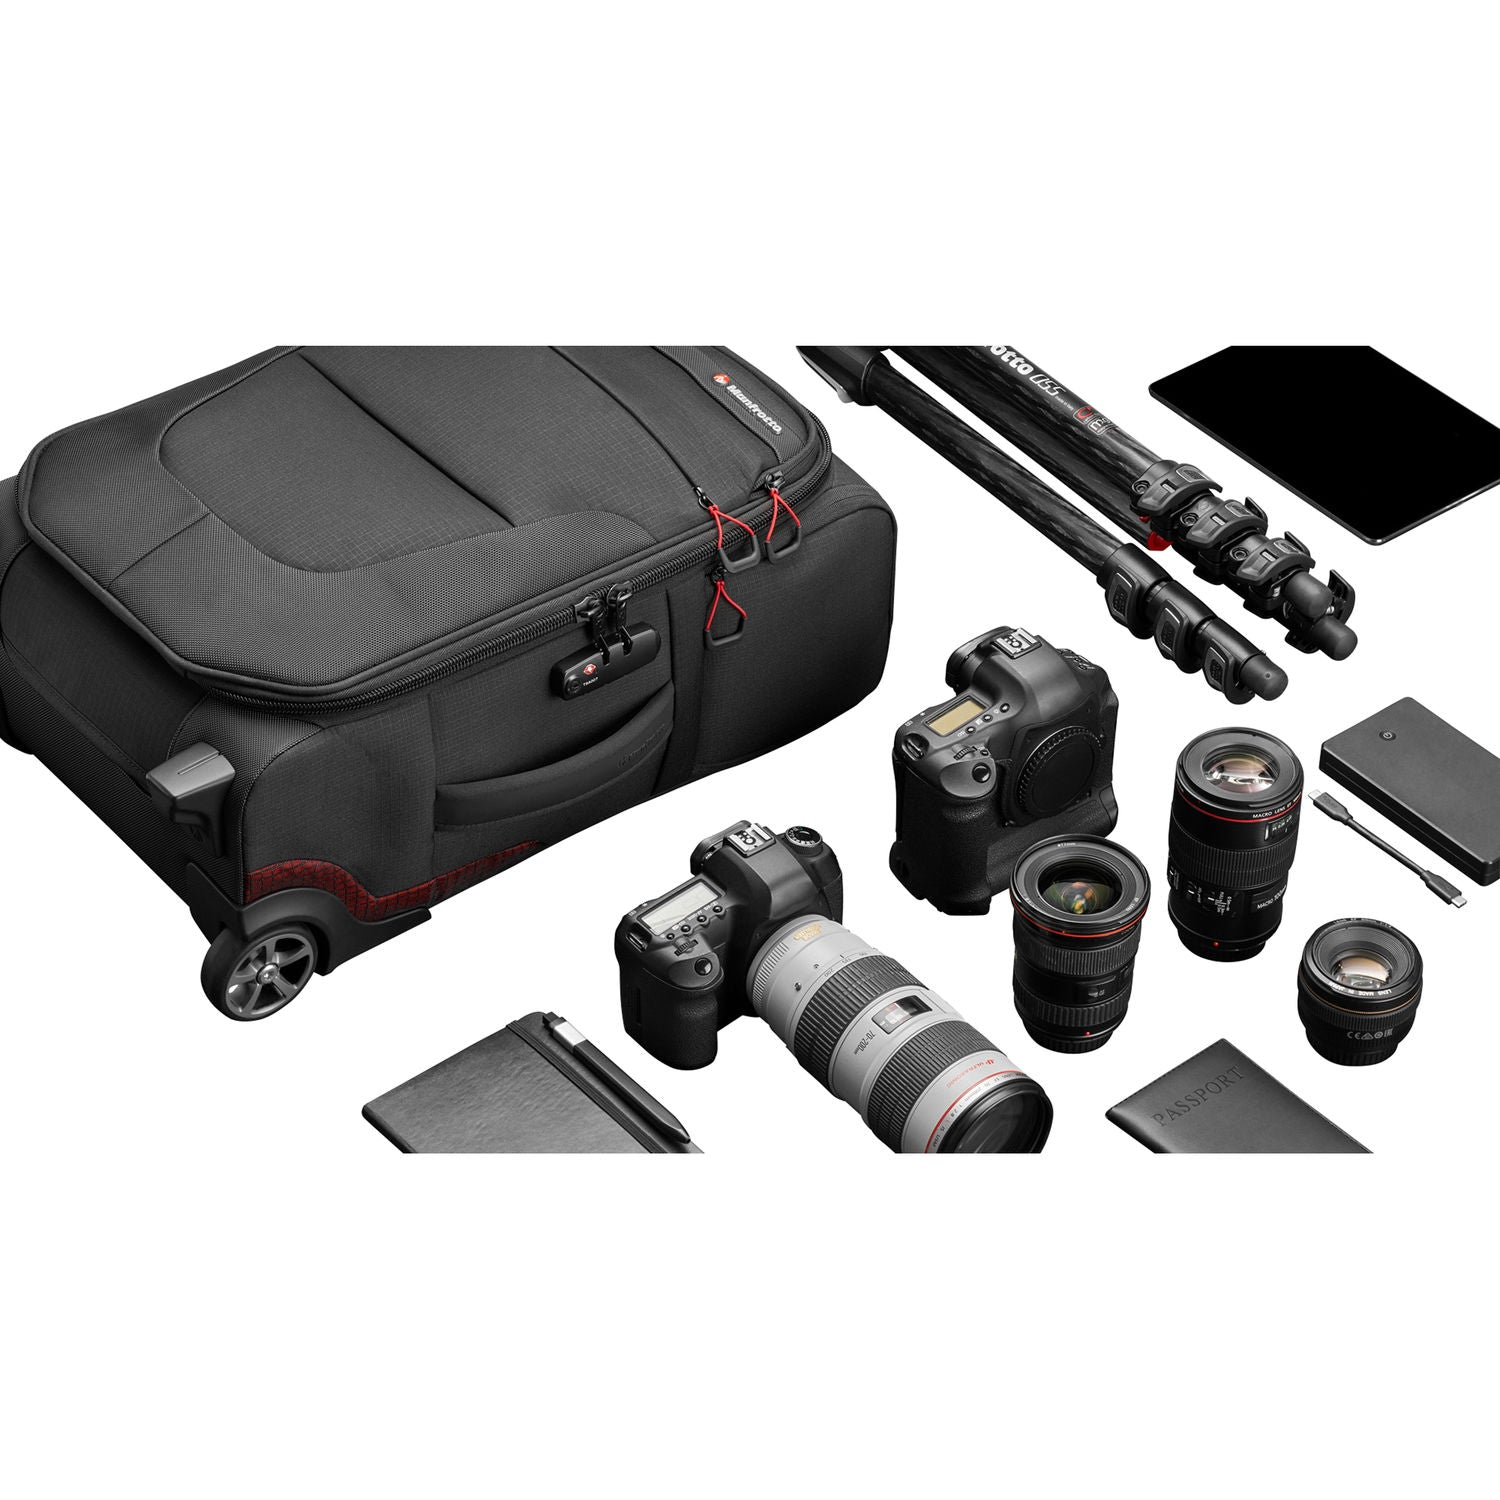 Manfrotto Pro Light Reloader Air-55 Carry-On Camera Roller Bag (Black)